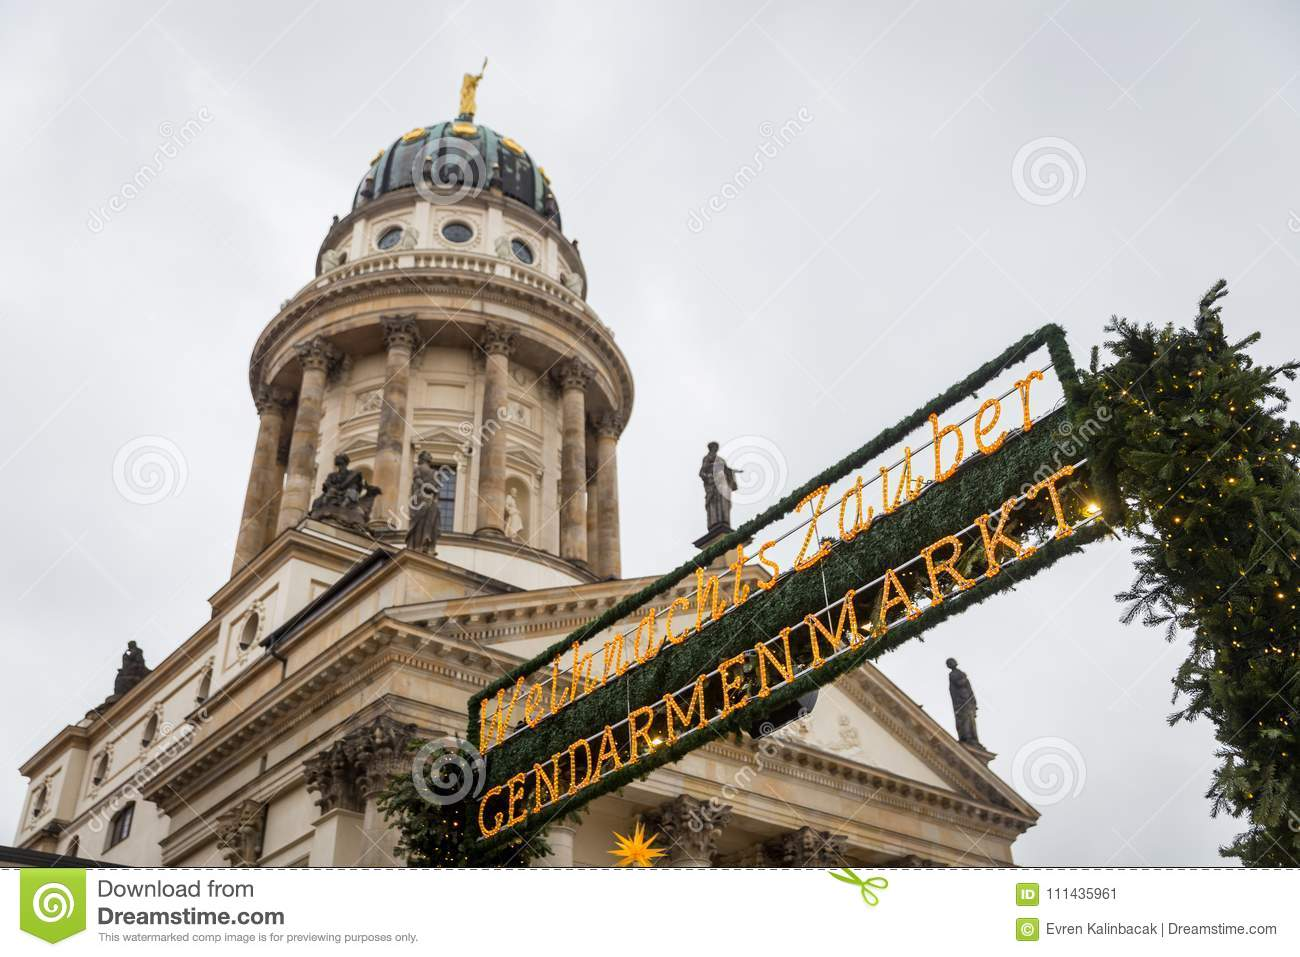 Cattedrale francese in Gendarmenmarkt, Berlino, Germania